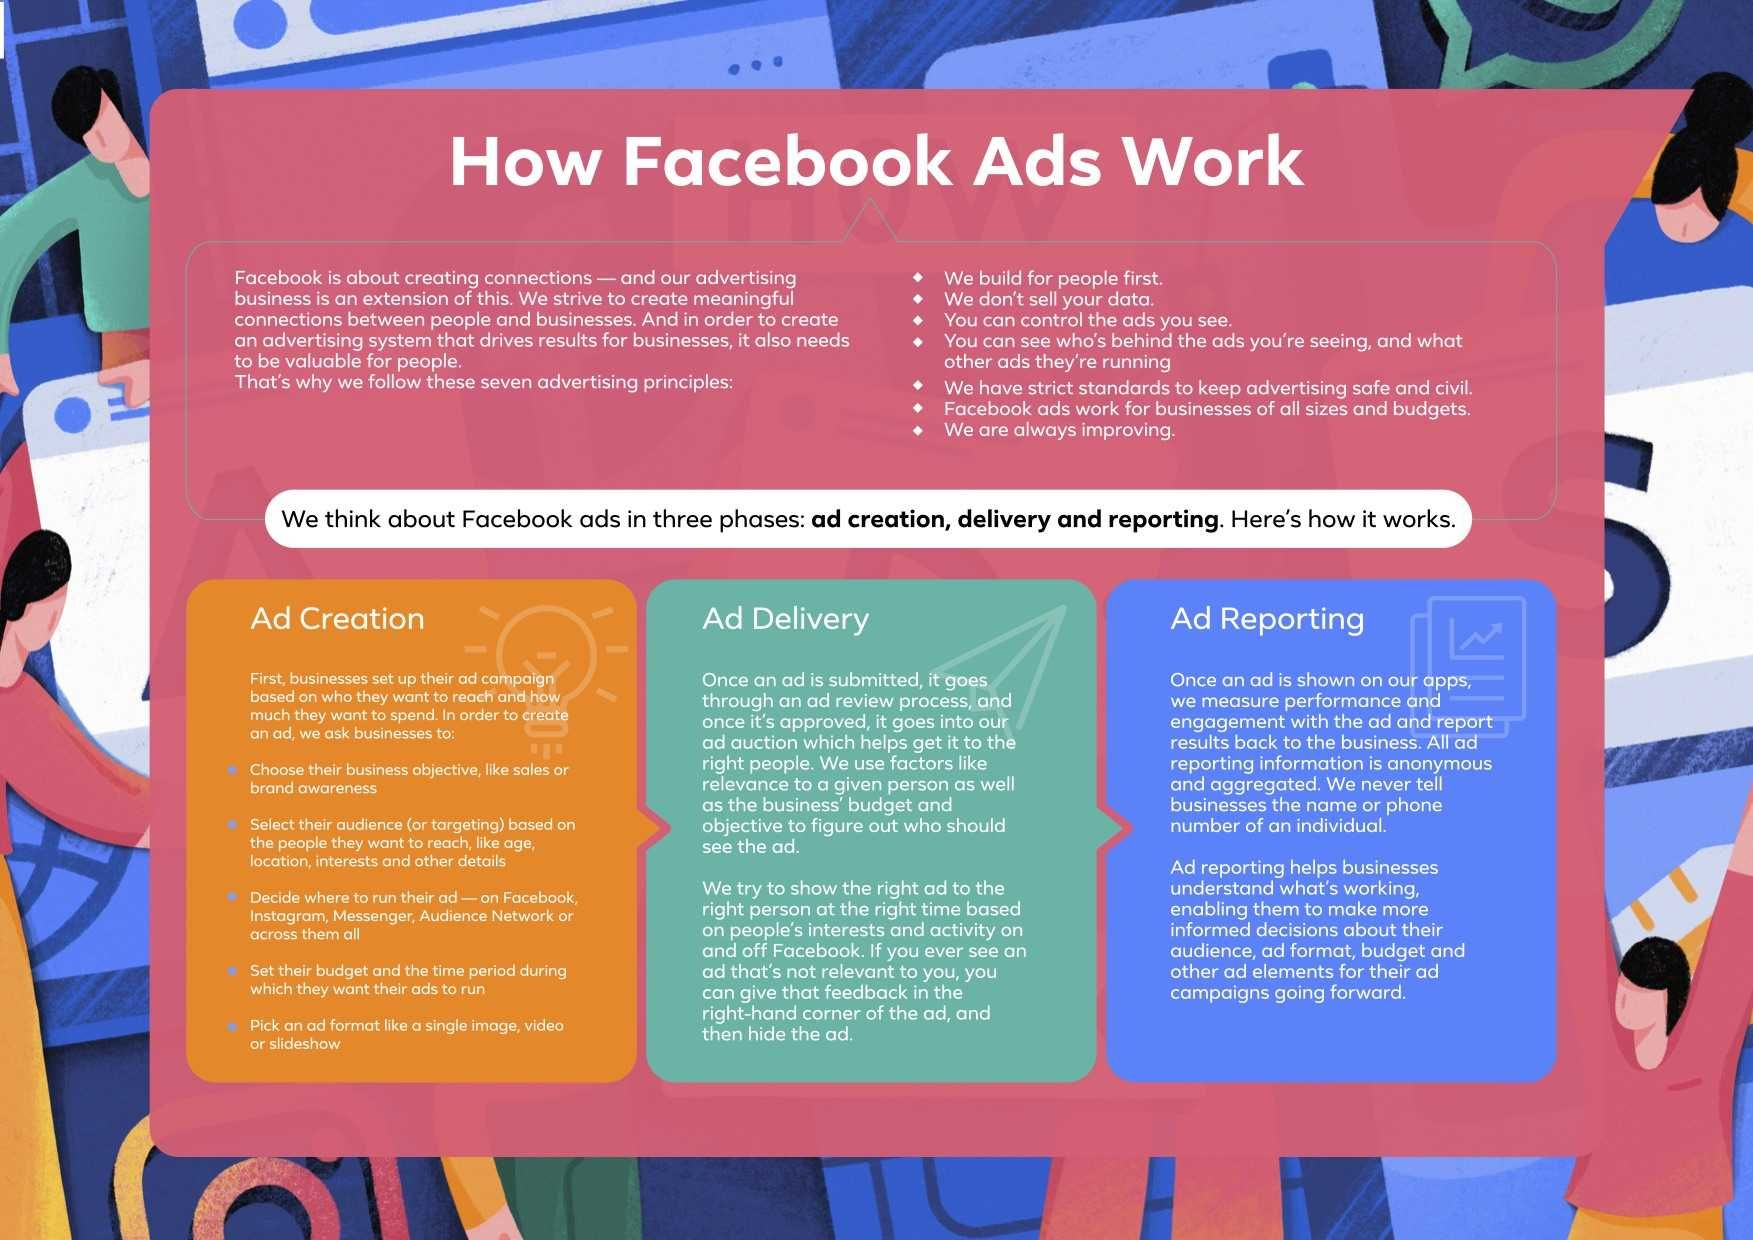 How Ads Work: Facebook attempts to increase Mena digital